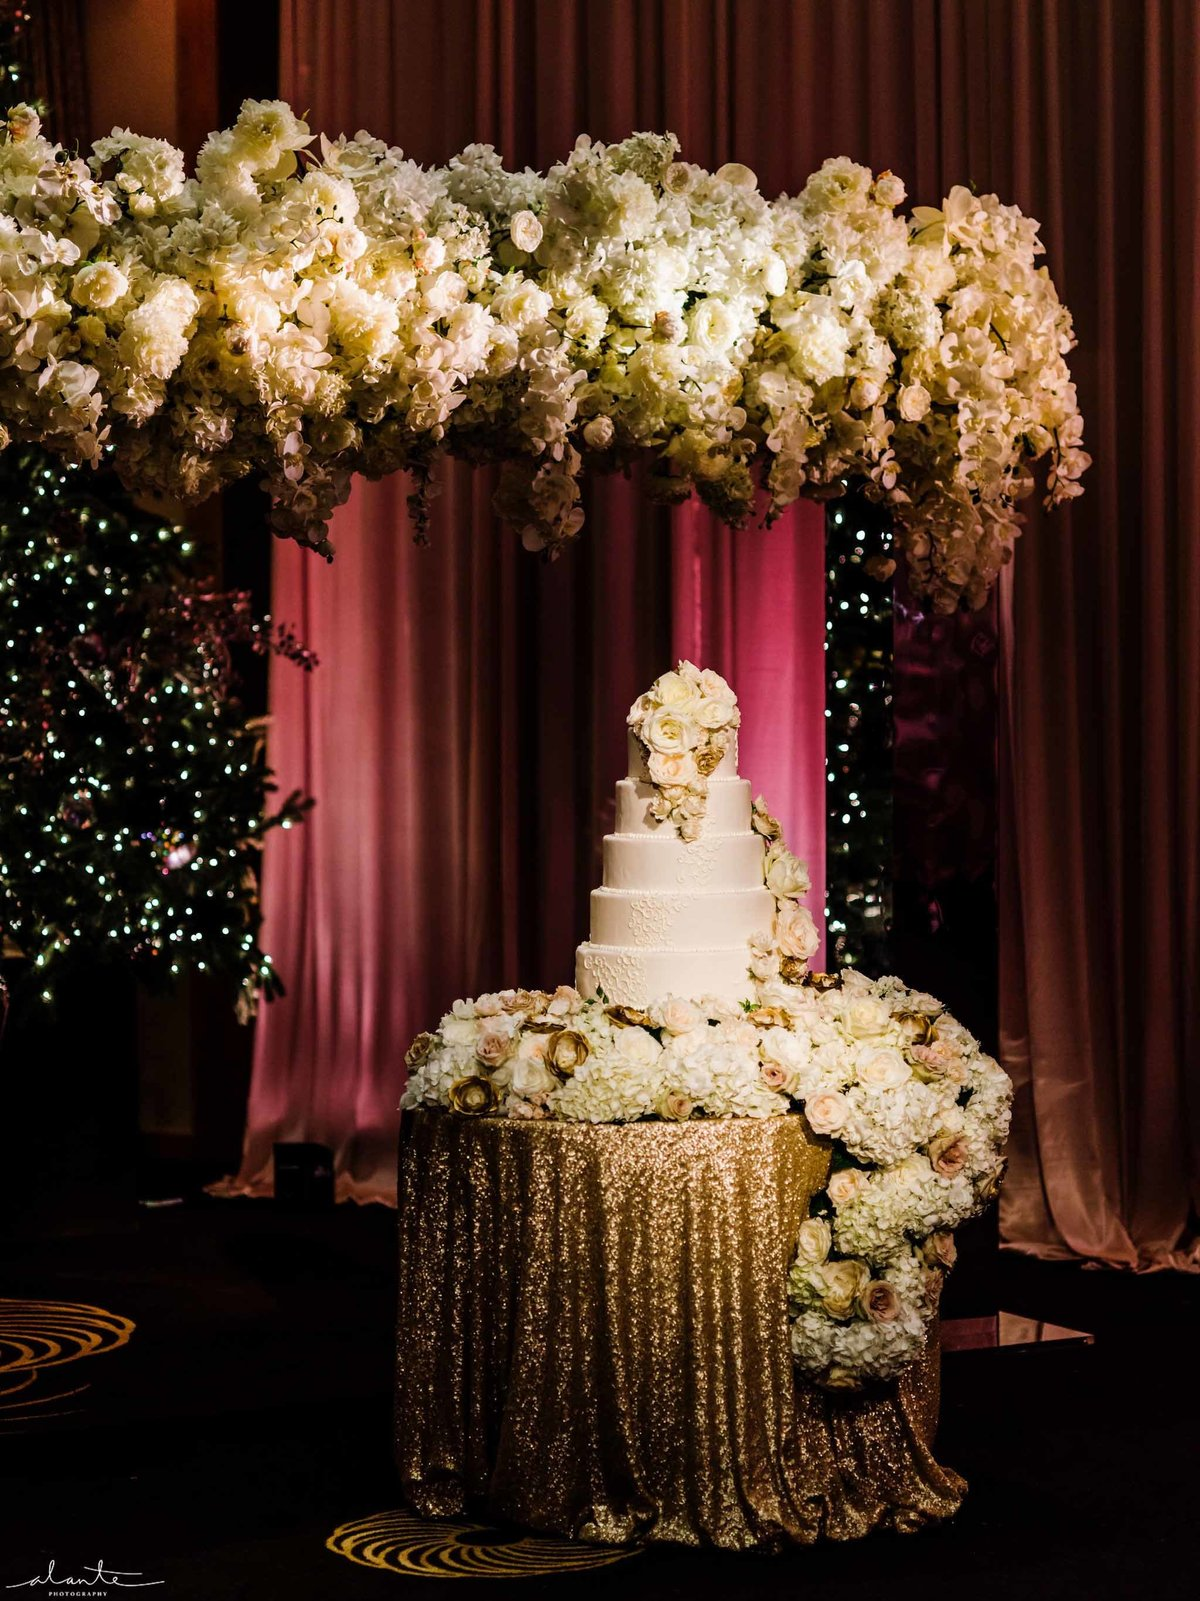 Wedding cake surrounded by white floral cascading over the cake table.